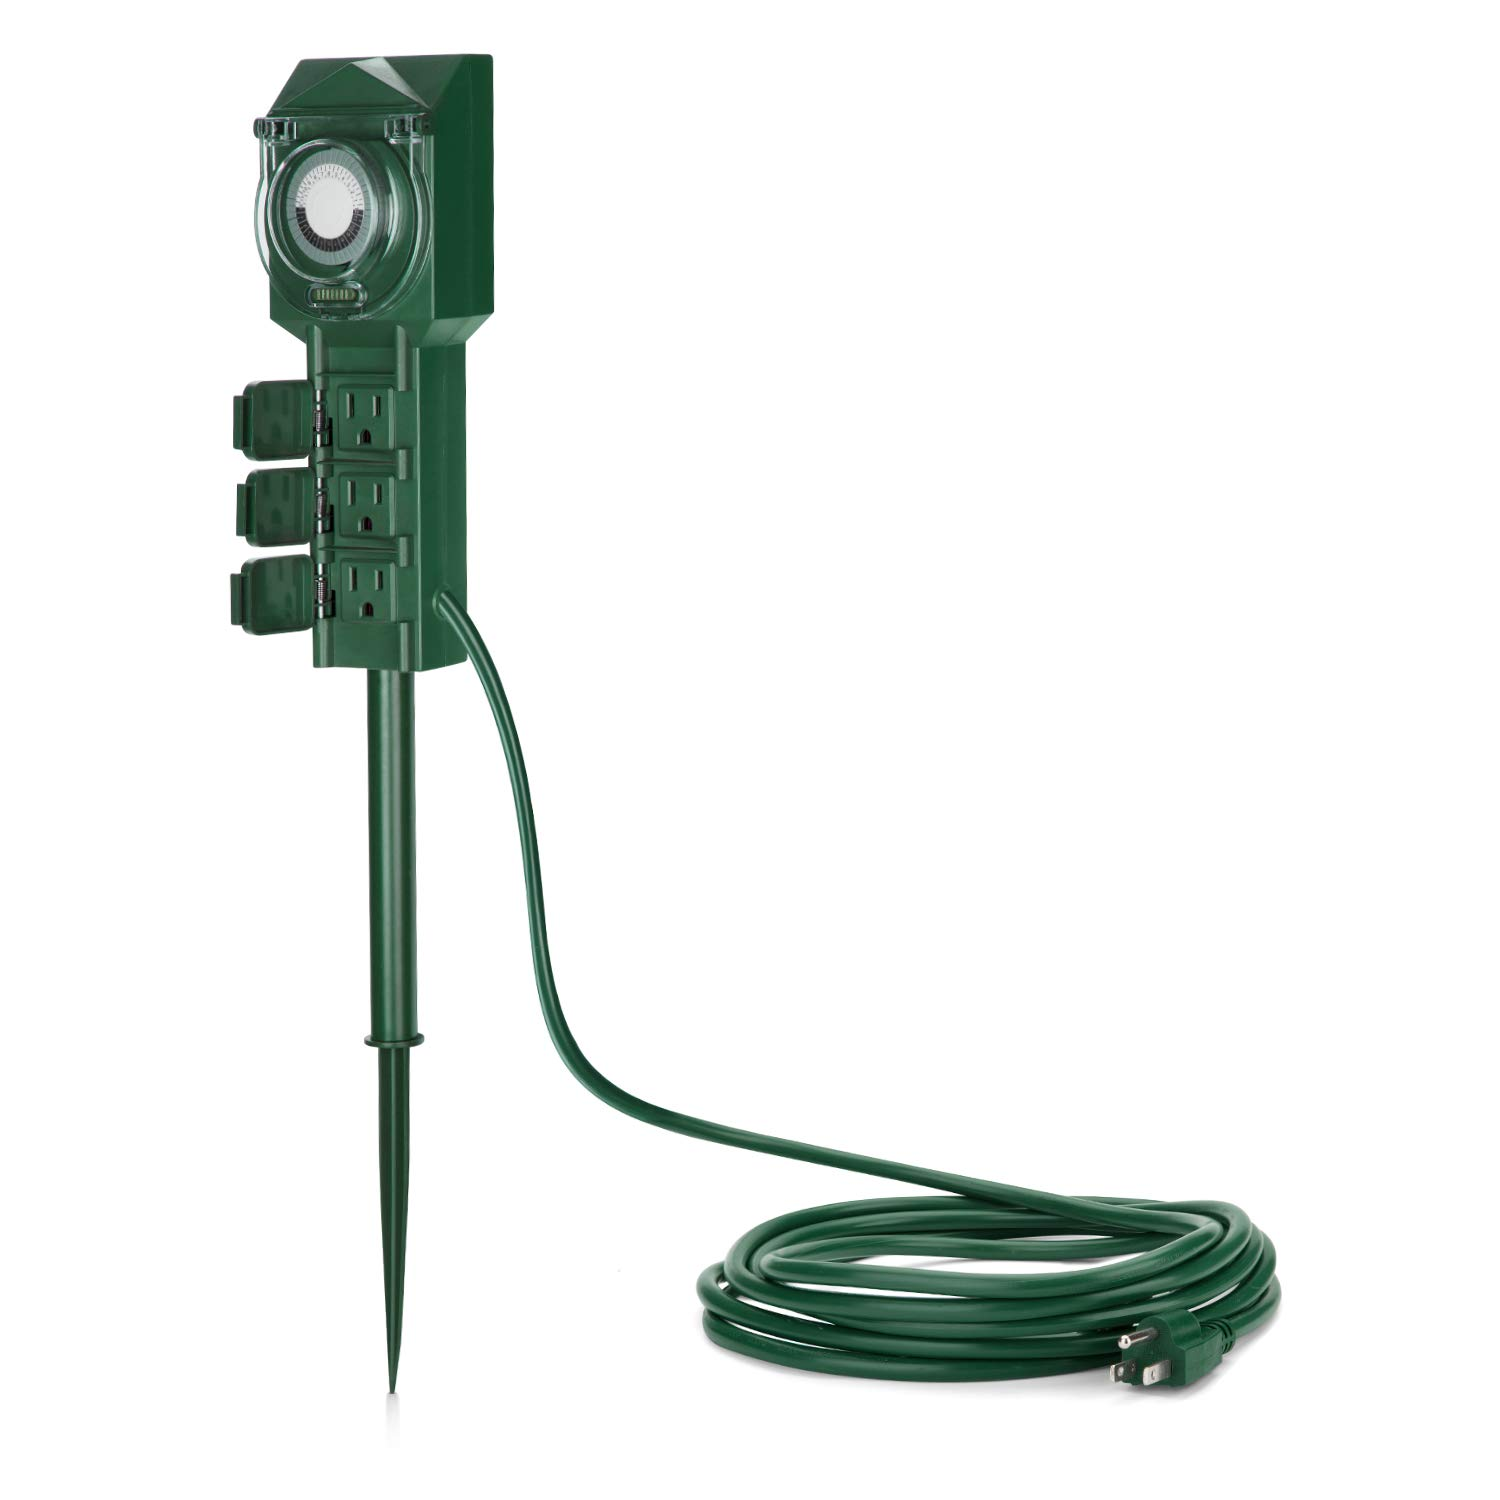 BESTTEN Outdoor Power Strip with 12-Foot Ultra Long Extension Cord, Weatherproof Yard Stake with 24-Hour Timer, ON/Off Switch, Waterproof Cover, ETL Certified, Green by BESTTEN